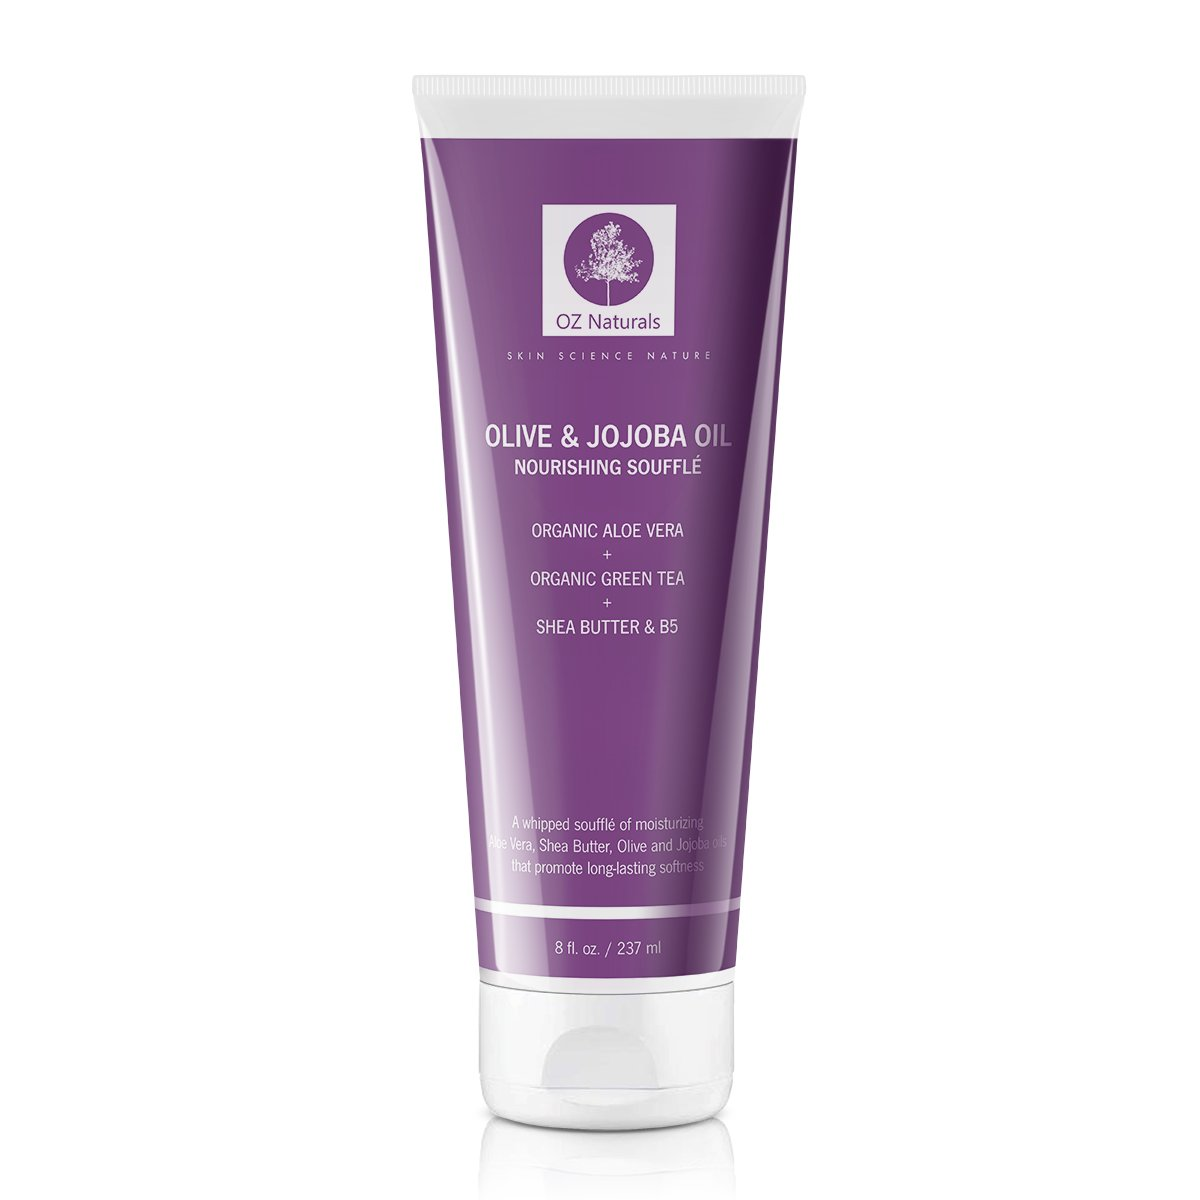 OZNaturals Body Moisturizer- This Natural Moisturizer Contains Shea Butter, Olive & Jojoba Oil Whipped Into A Rich Soufflè Which Will Provide Your Skin With A Healthy Glow! OZ Naturals PW-LX9G-R862